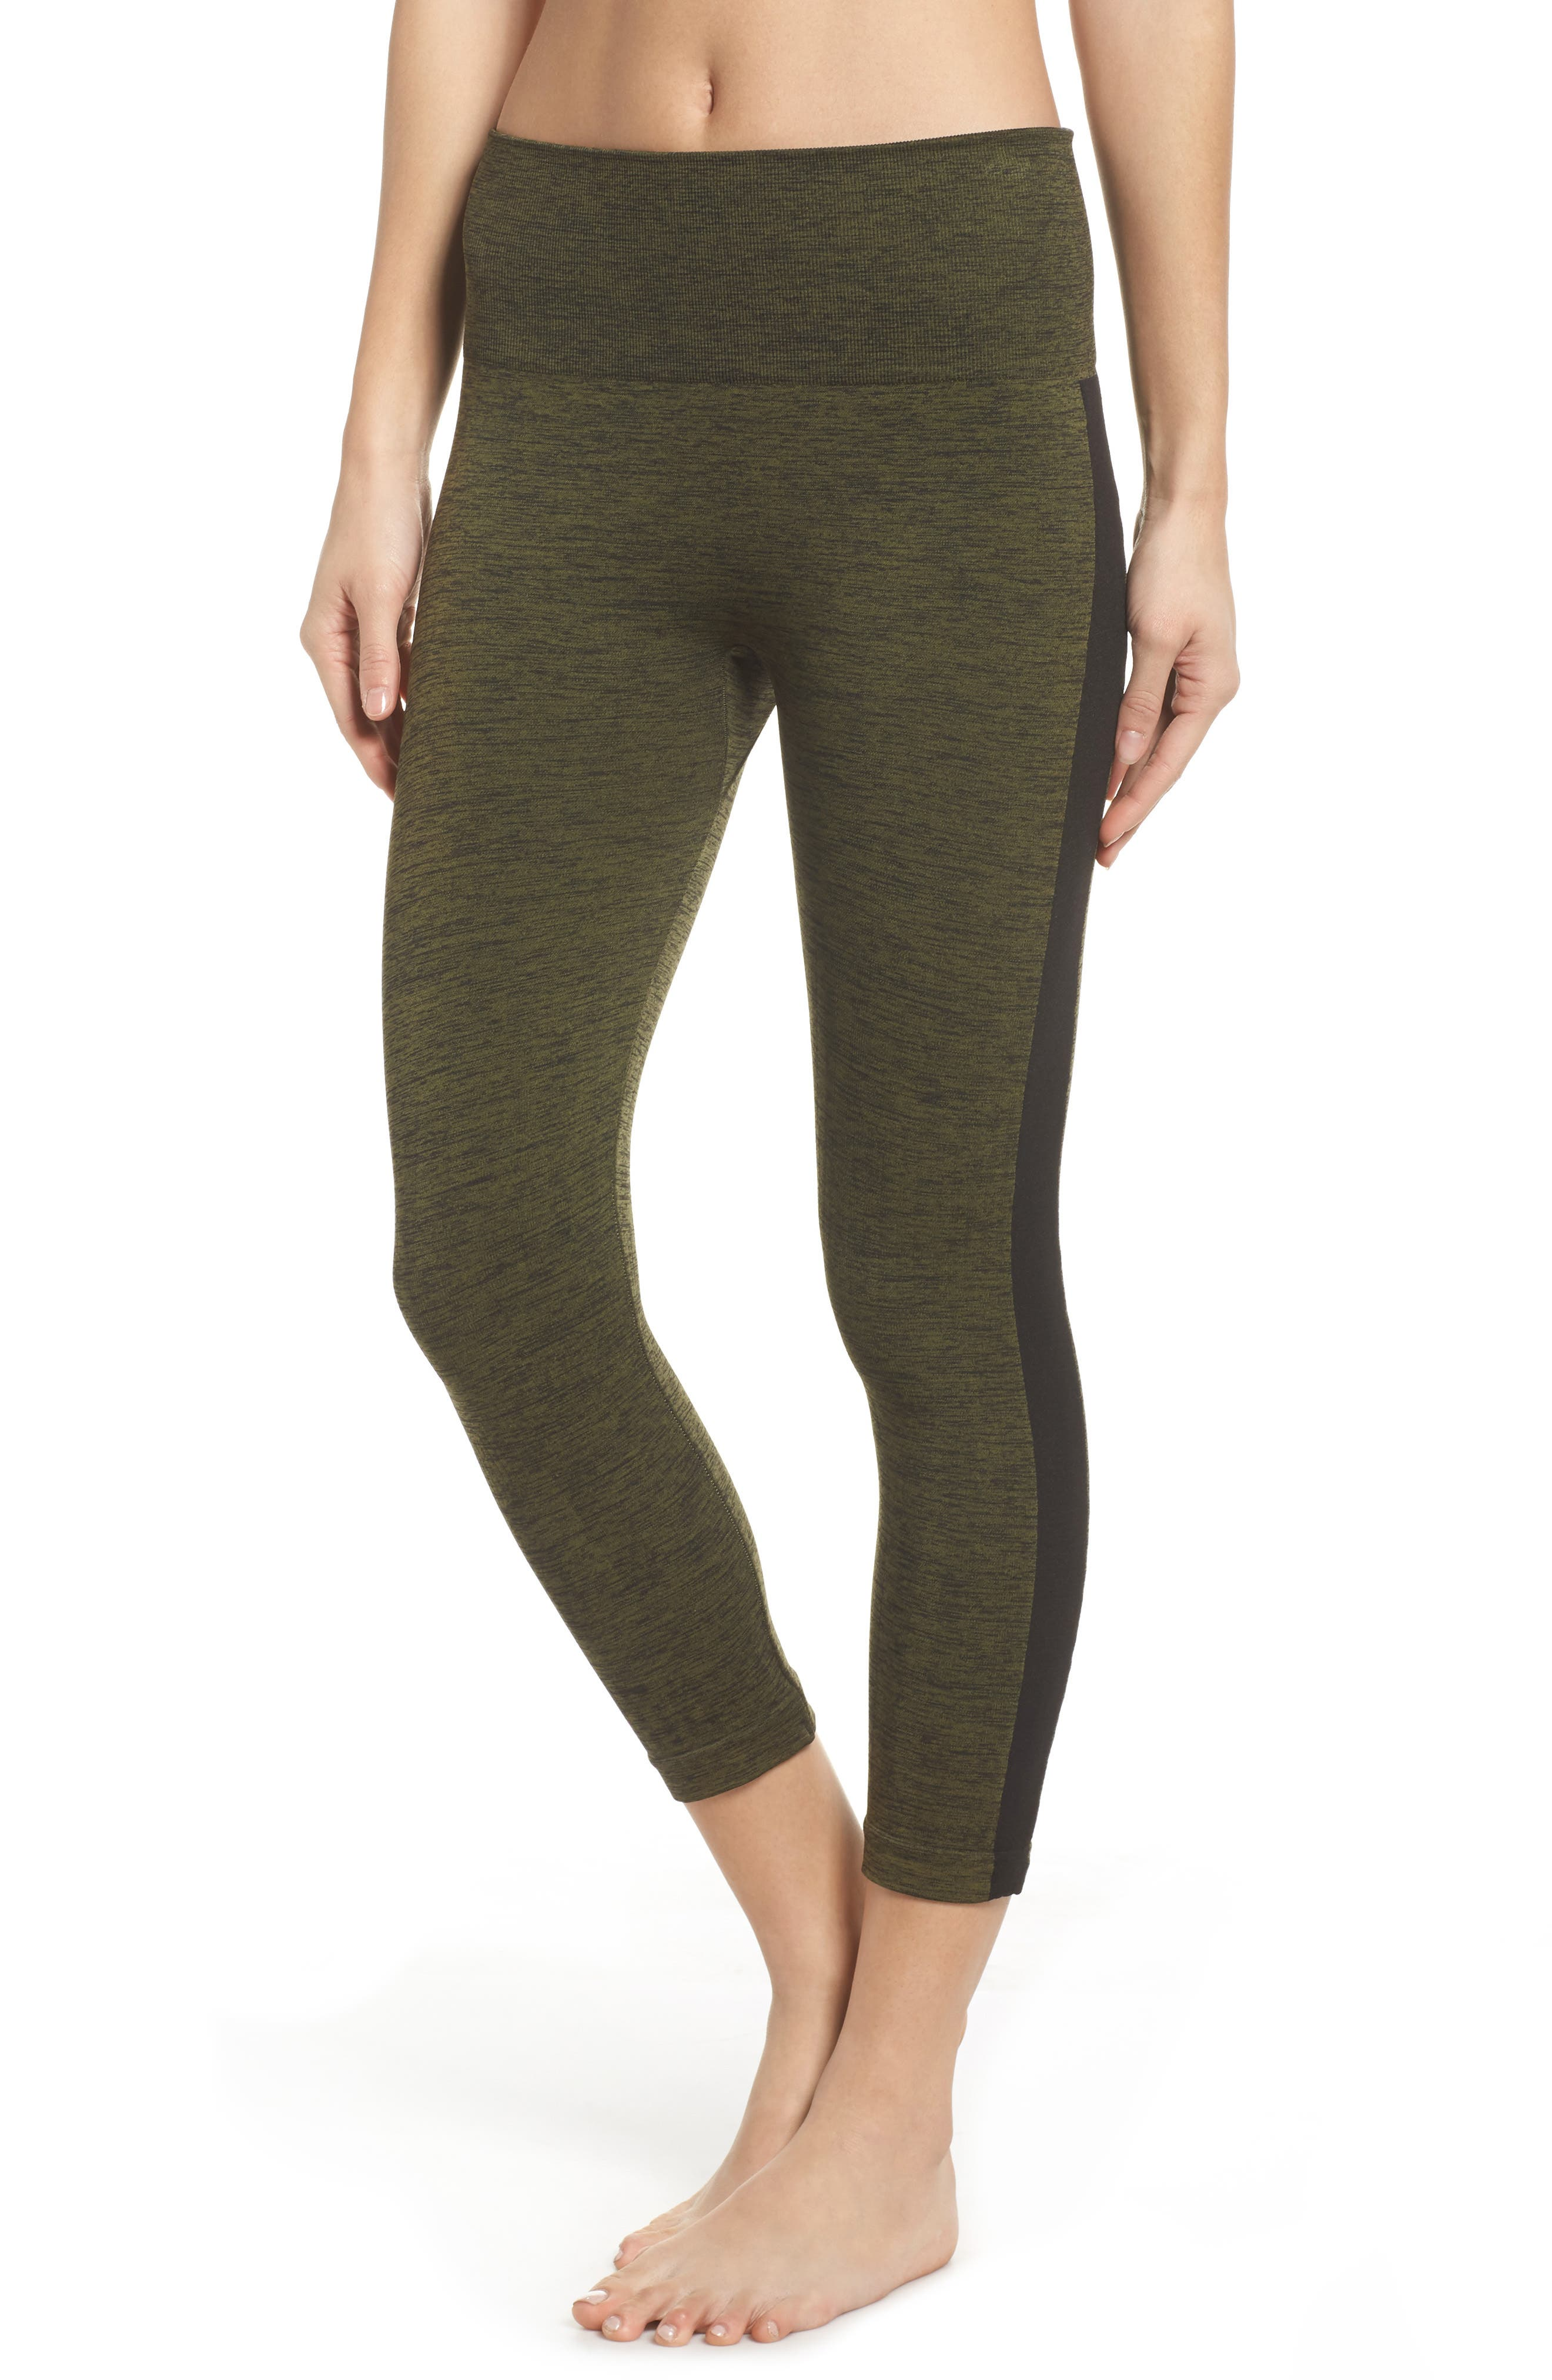 Stamina Capri Leggings,                         Main,                         color, 300